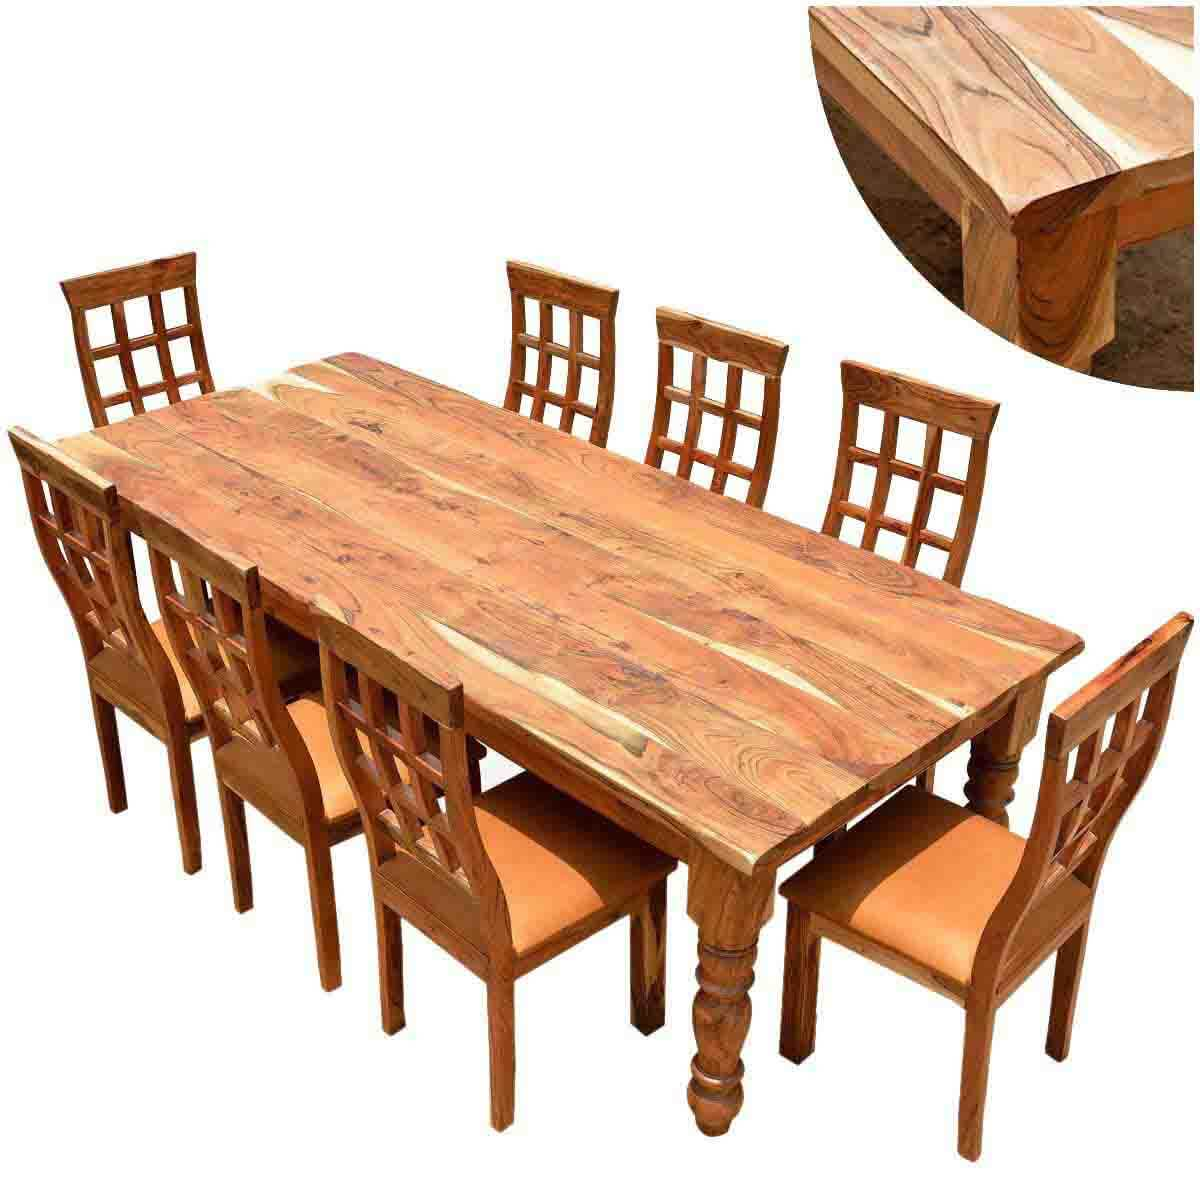 dining table and chair sets kitchen table chairs set Rustic Furniture Farmhouse Solid Wood Dining Table Chair Set